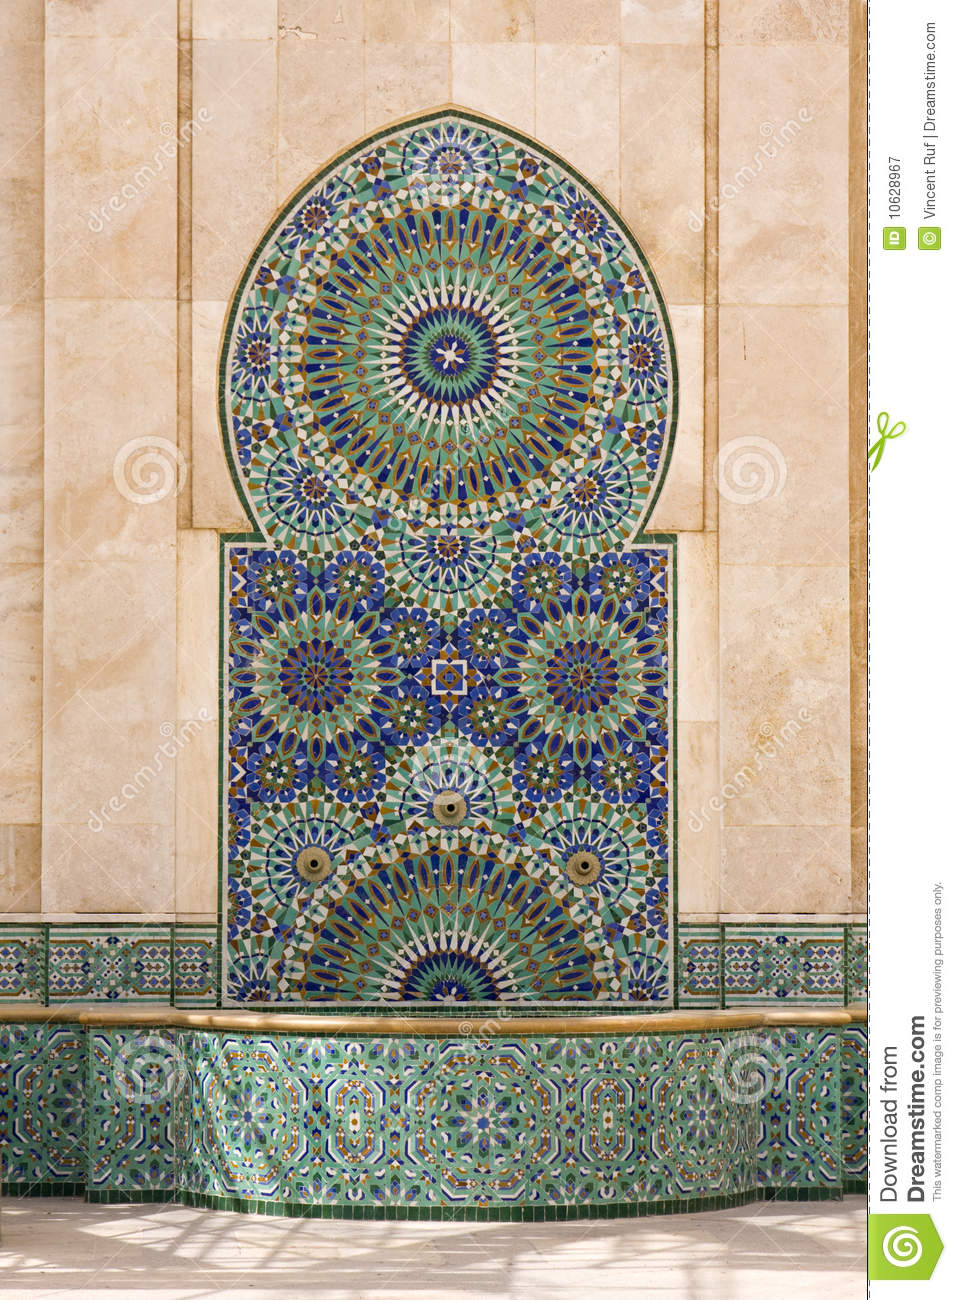 Free Islamic Wall Art